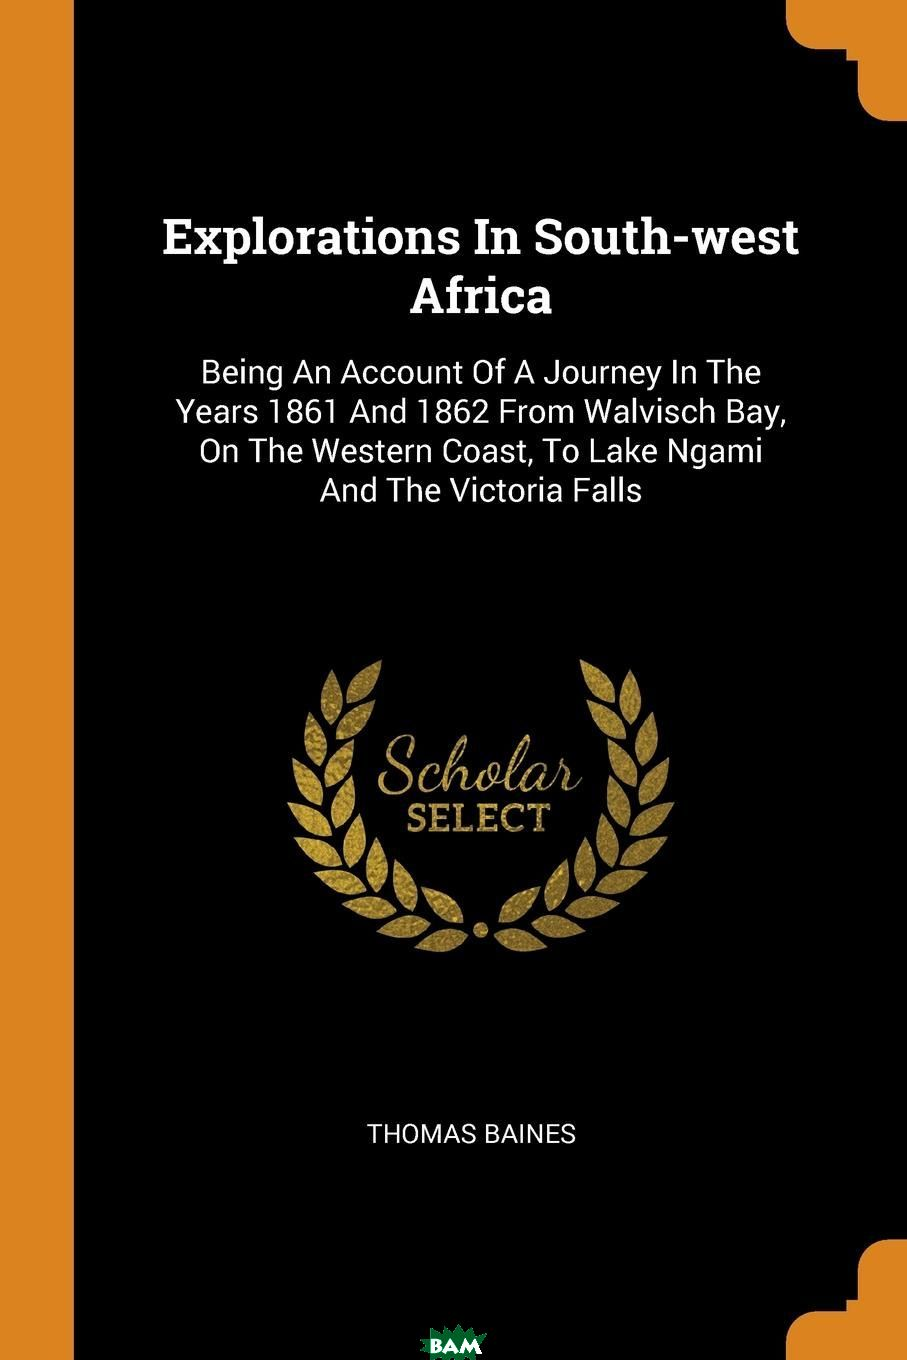 Купить Explorations In South-west Africa. Being An Account Of A Journey In The Years 1861 And 1862 From Walvisch Bay, On The Western Coast, To Lake Ngami And The Victoria Falls, Thomas Baines, 9780353409088